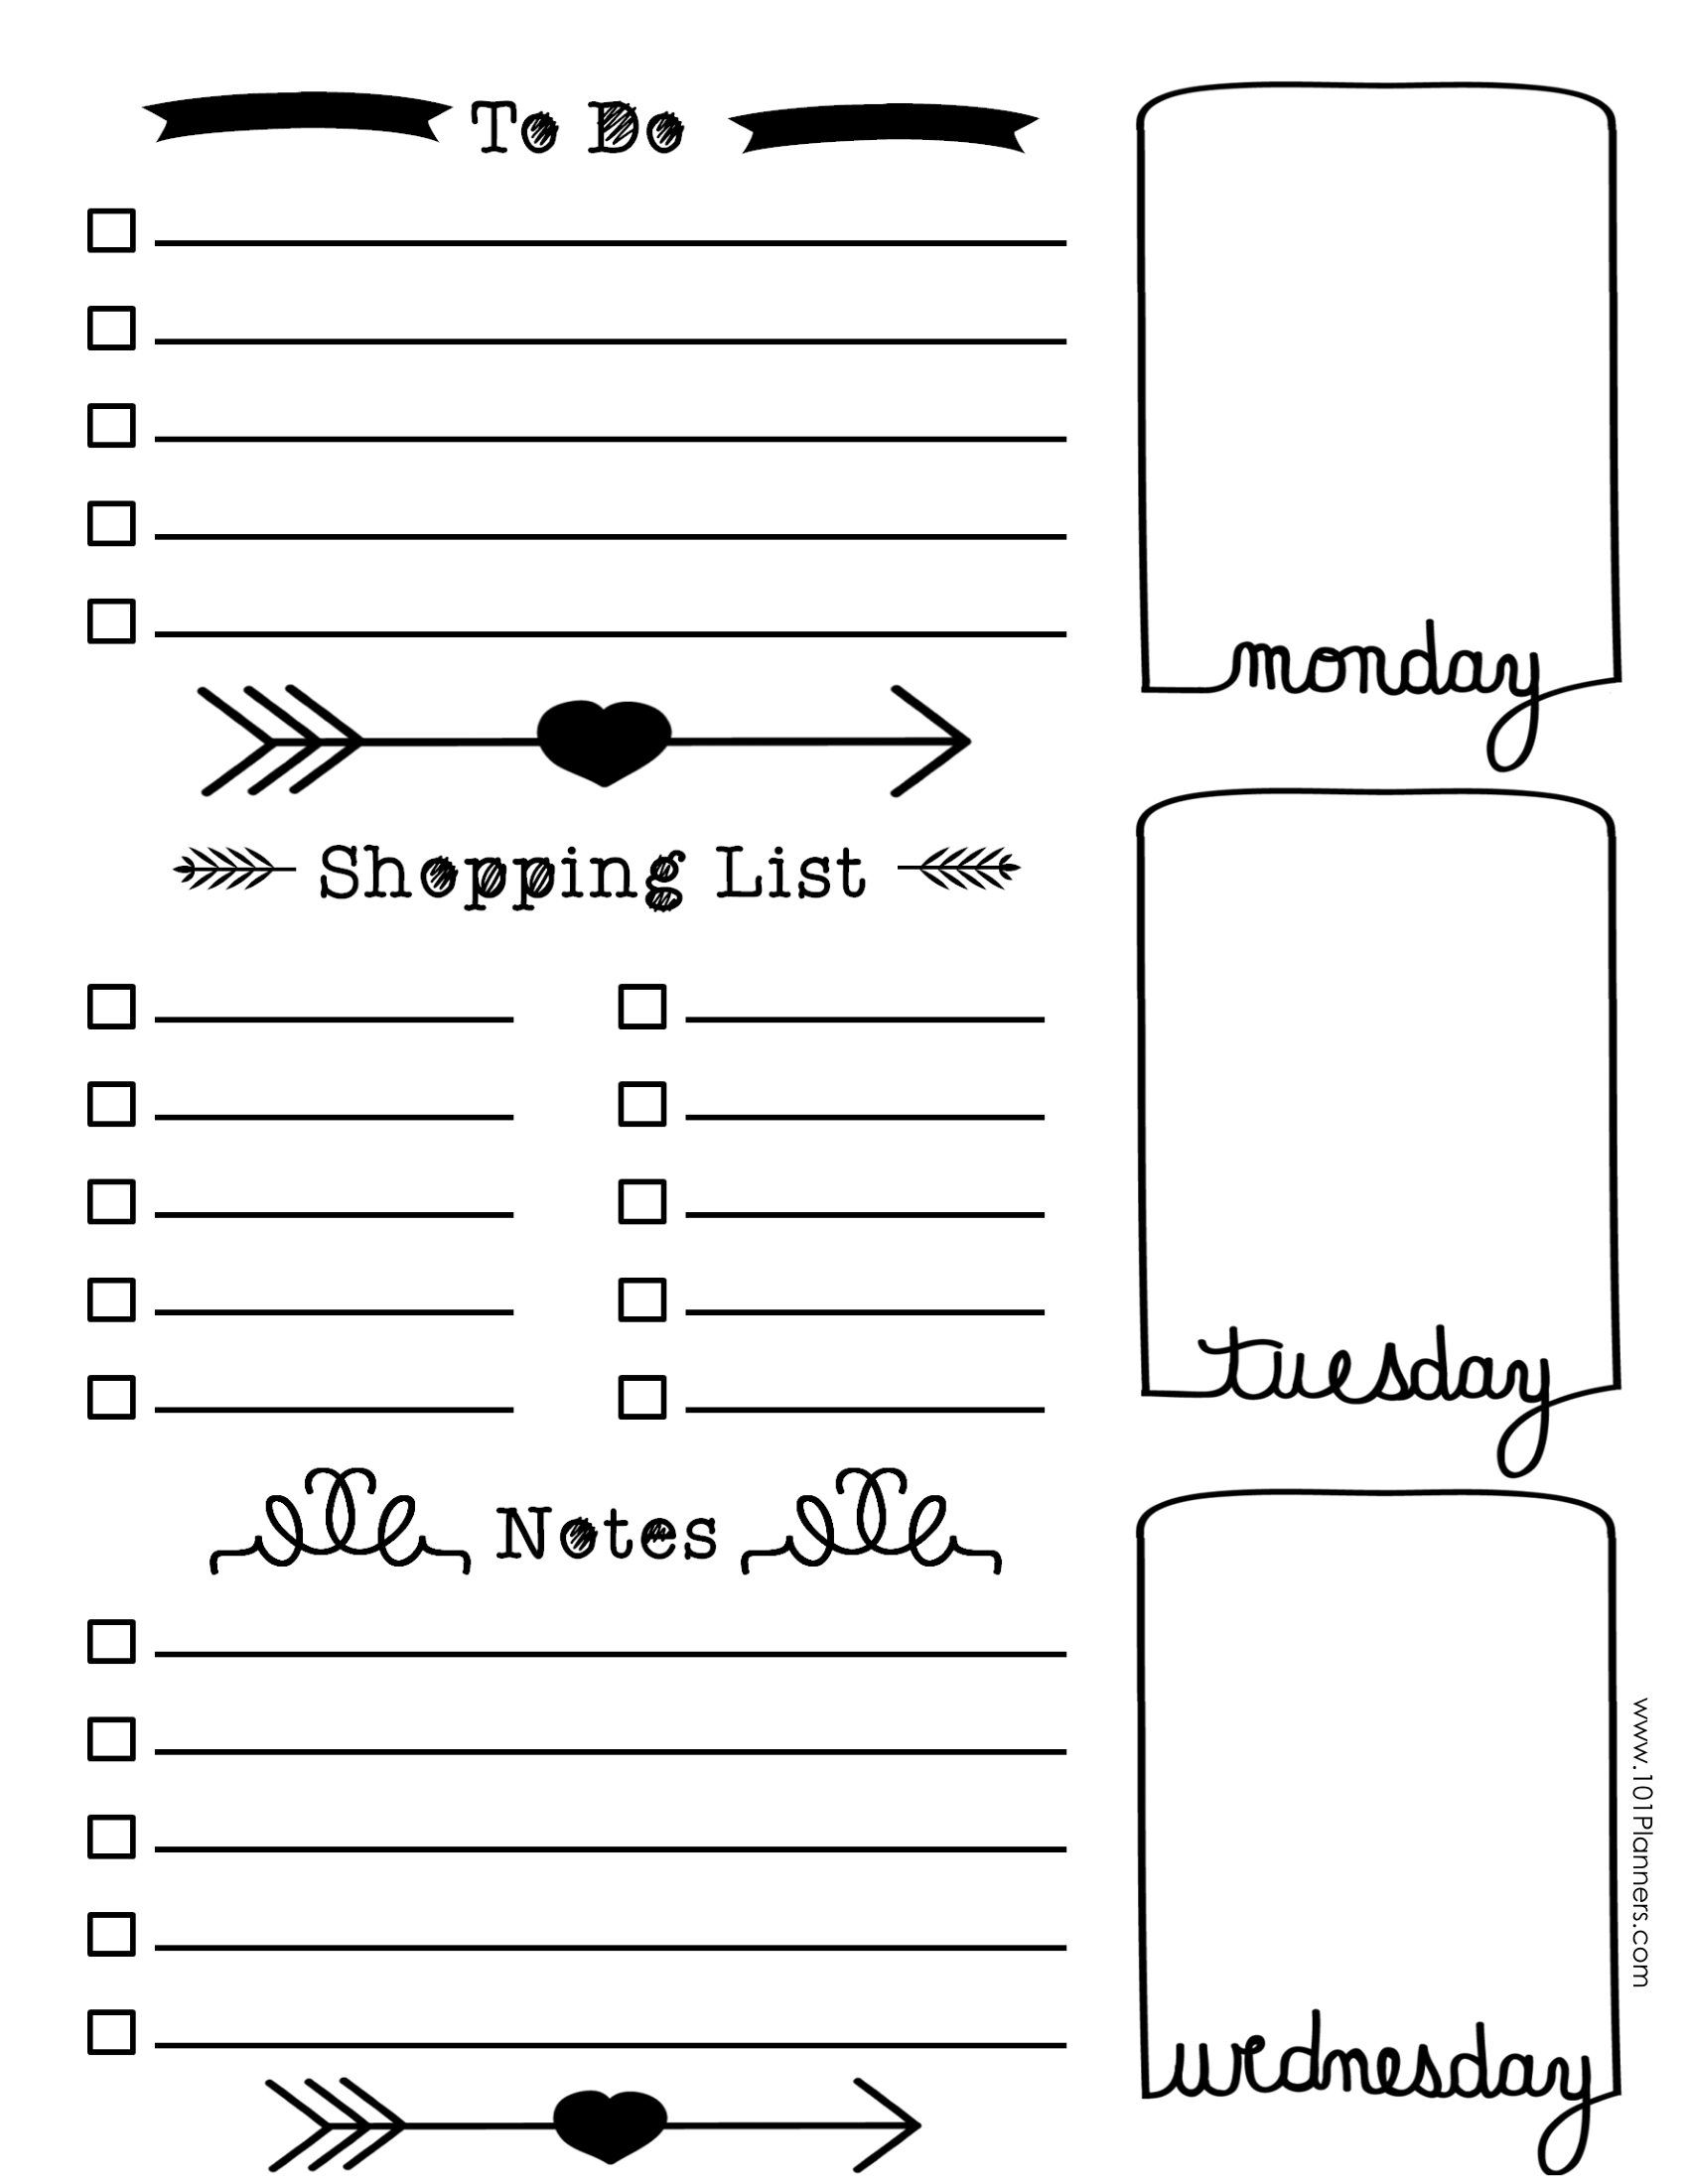 Image Result For Bullet Journal Templates